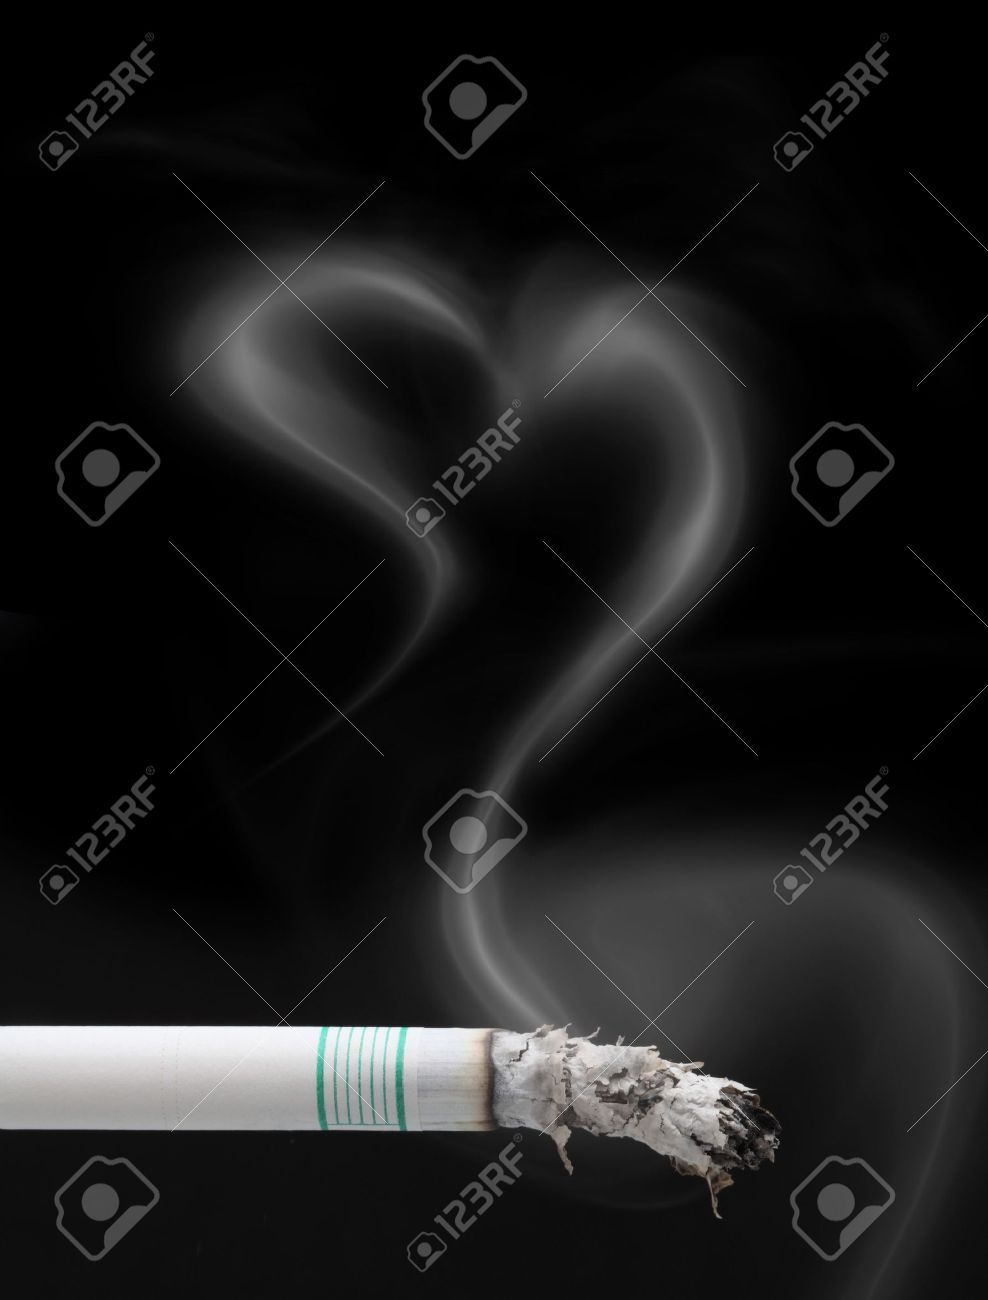 smoking is not healthy for your health Stock Photo - 6324387